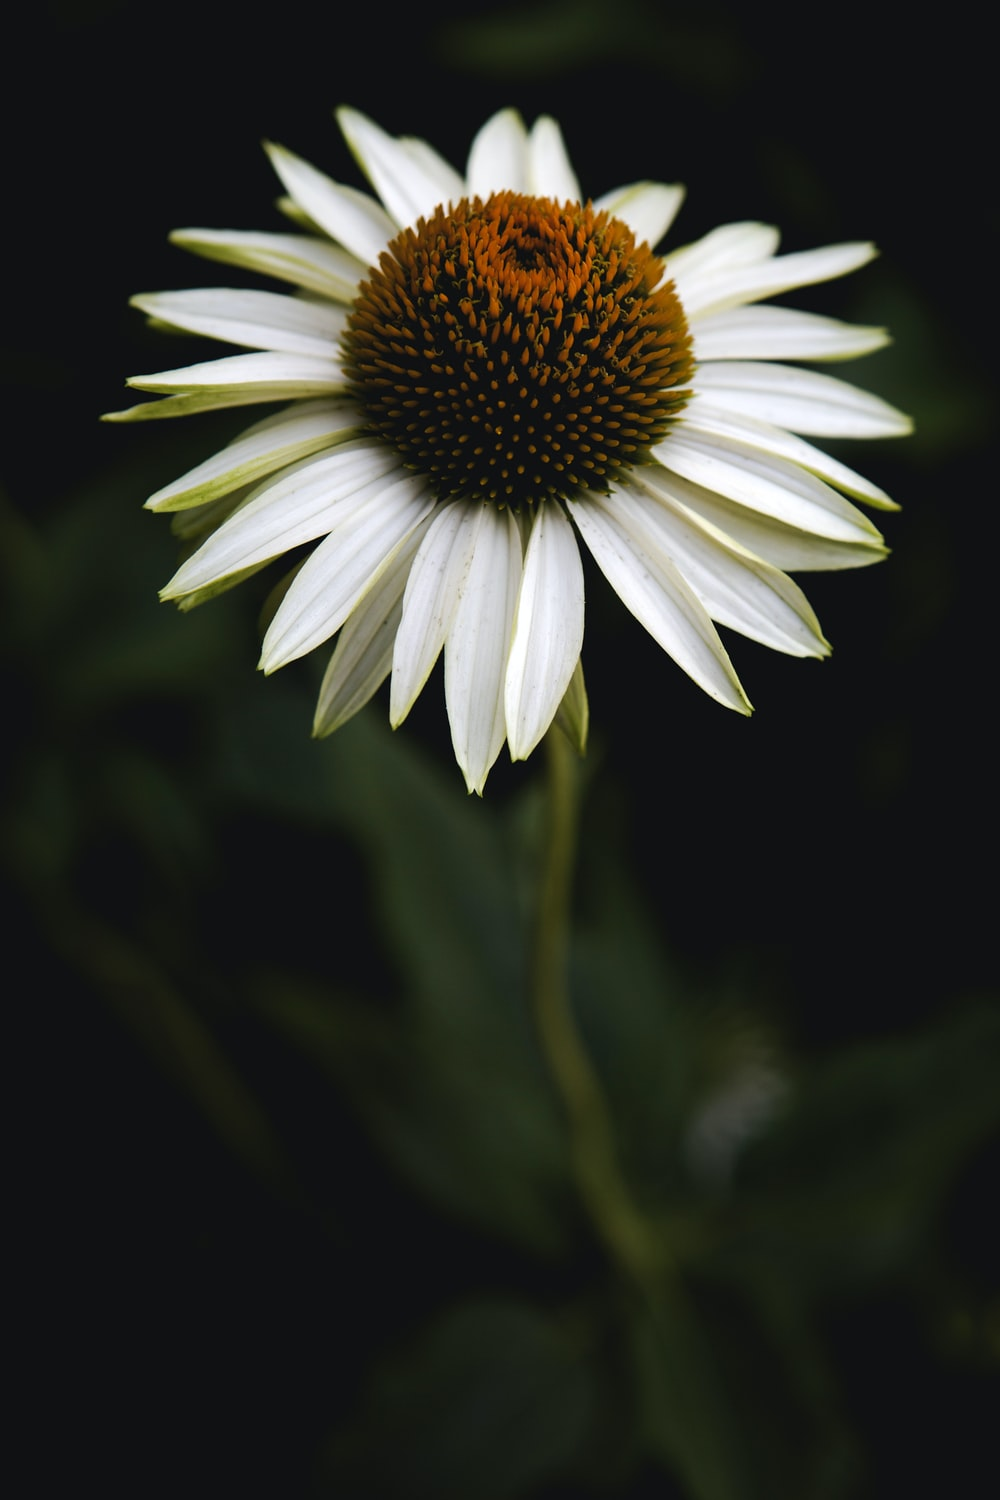 white and yellow daisy in bloom during daytime